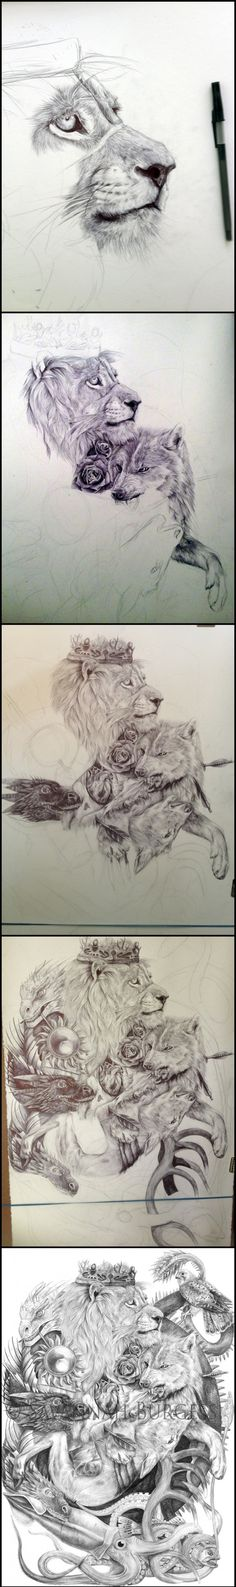 A massive Game of Thrones themed drawing by Artist Savannah Burgess